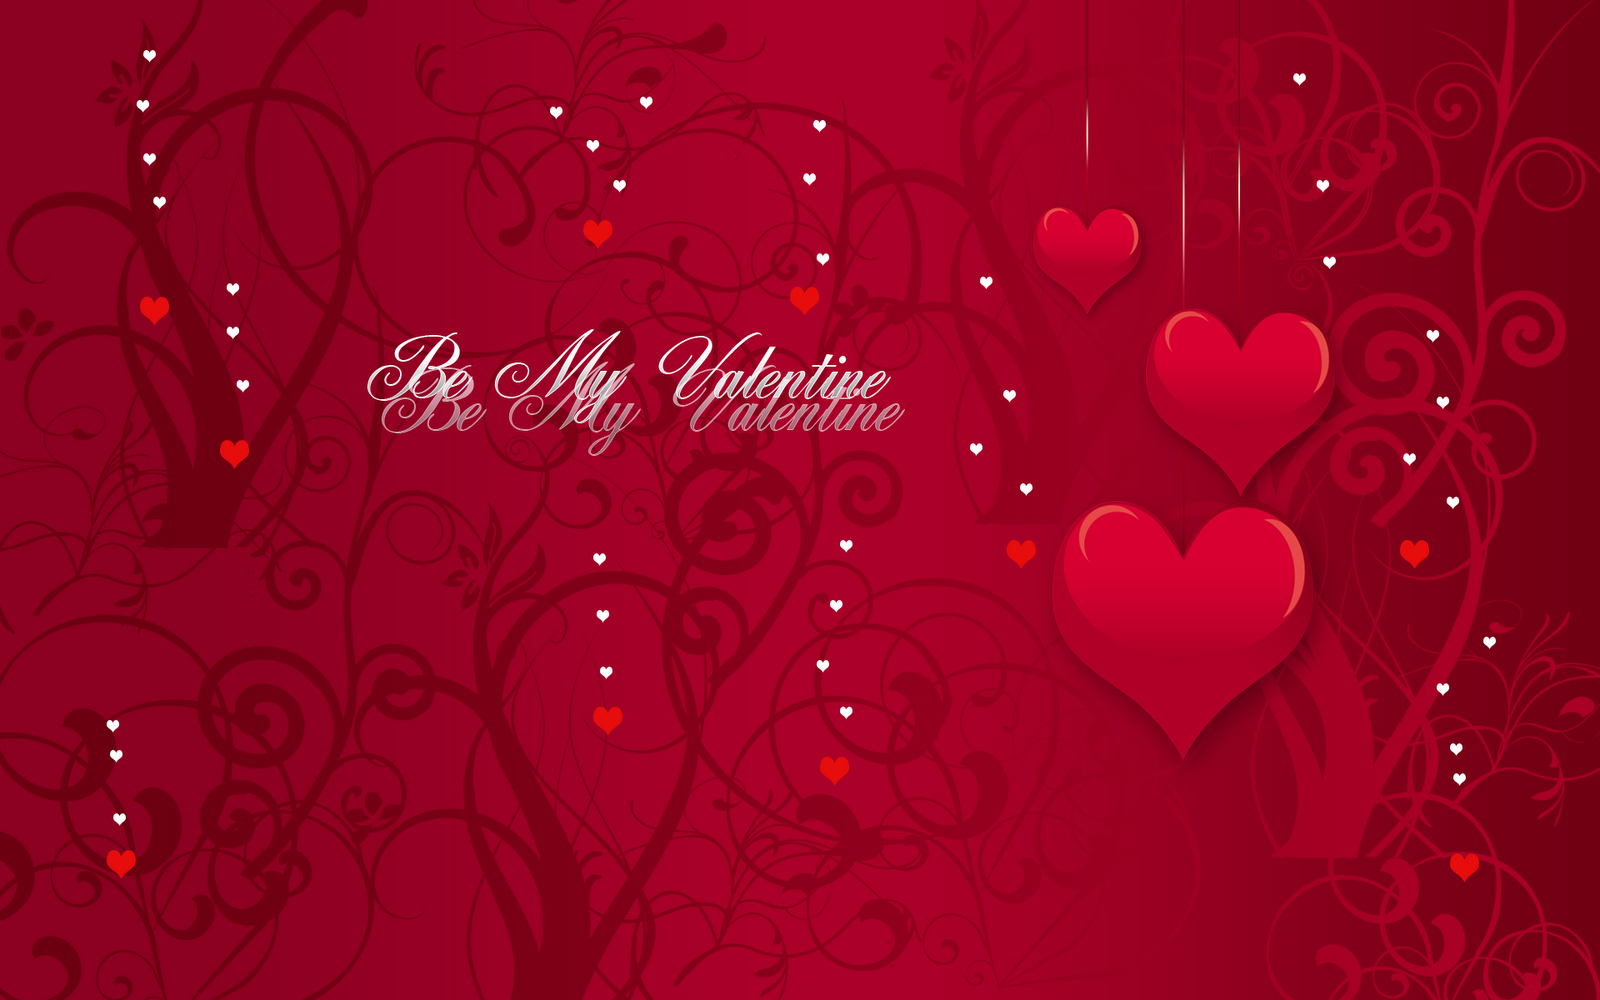 Valentineu002639;s Day  Love u2502HD Wallpapers Download Free Wallpapers in HD for your Desktop